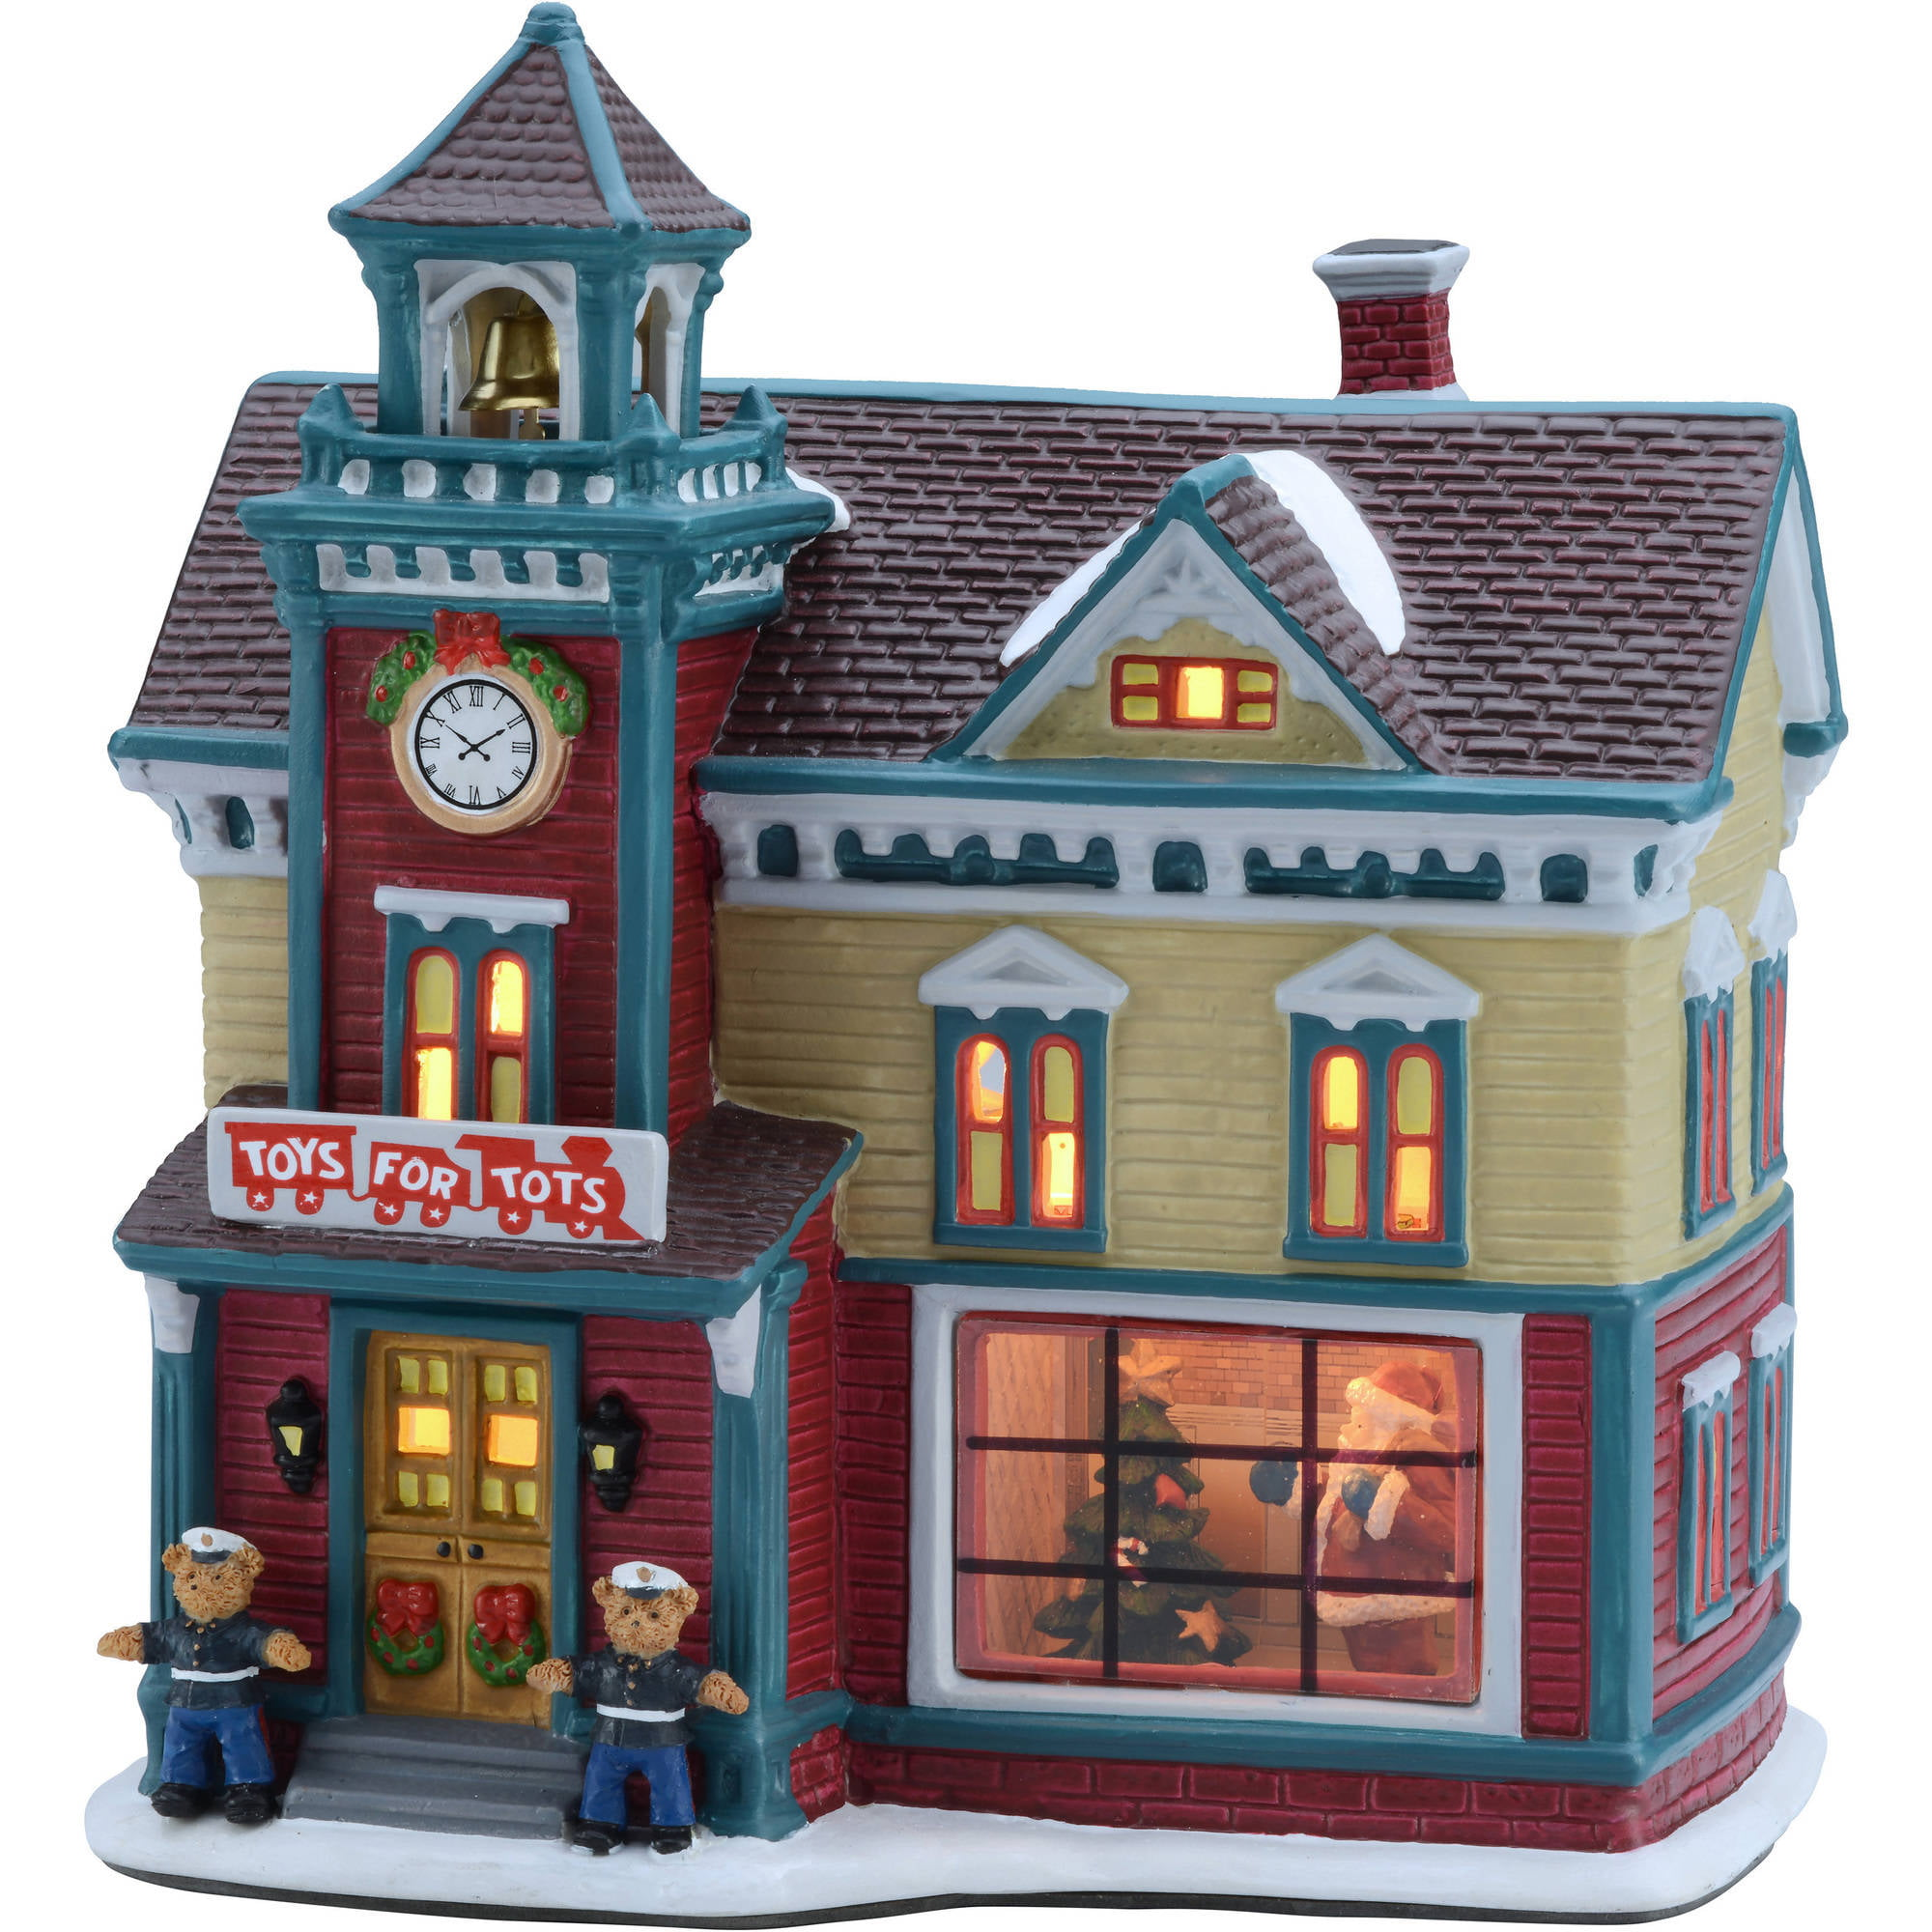 Country christmas decorations 2014 - Holiday Time 8 25 Toys For Tots House Christmas Village